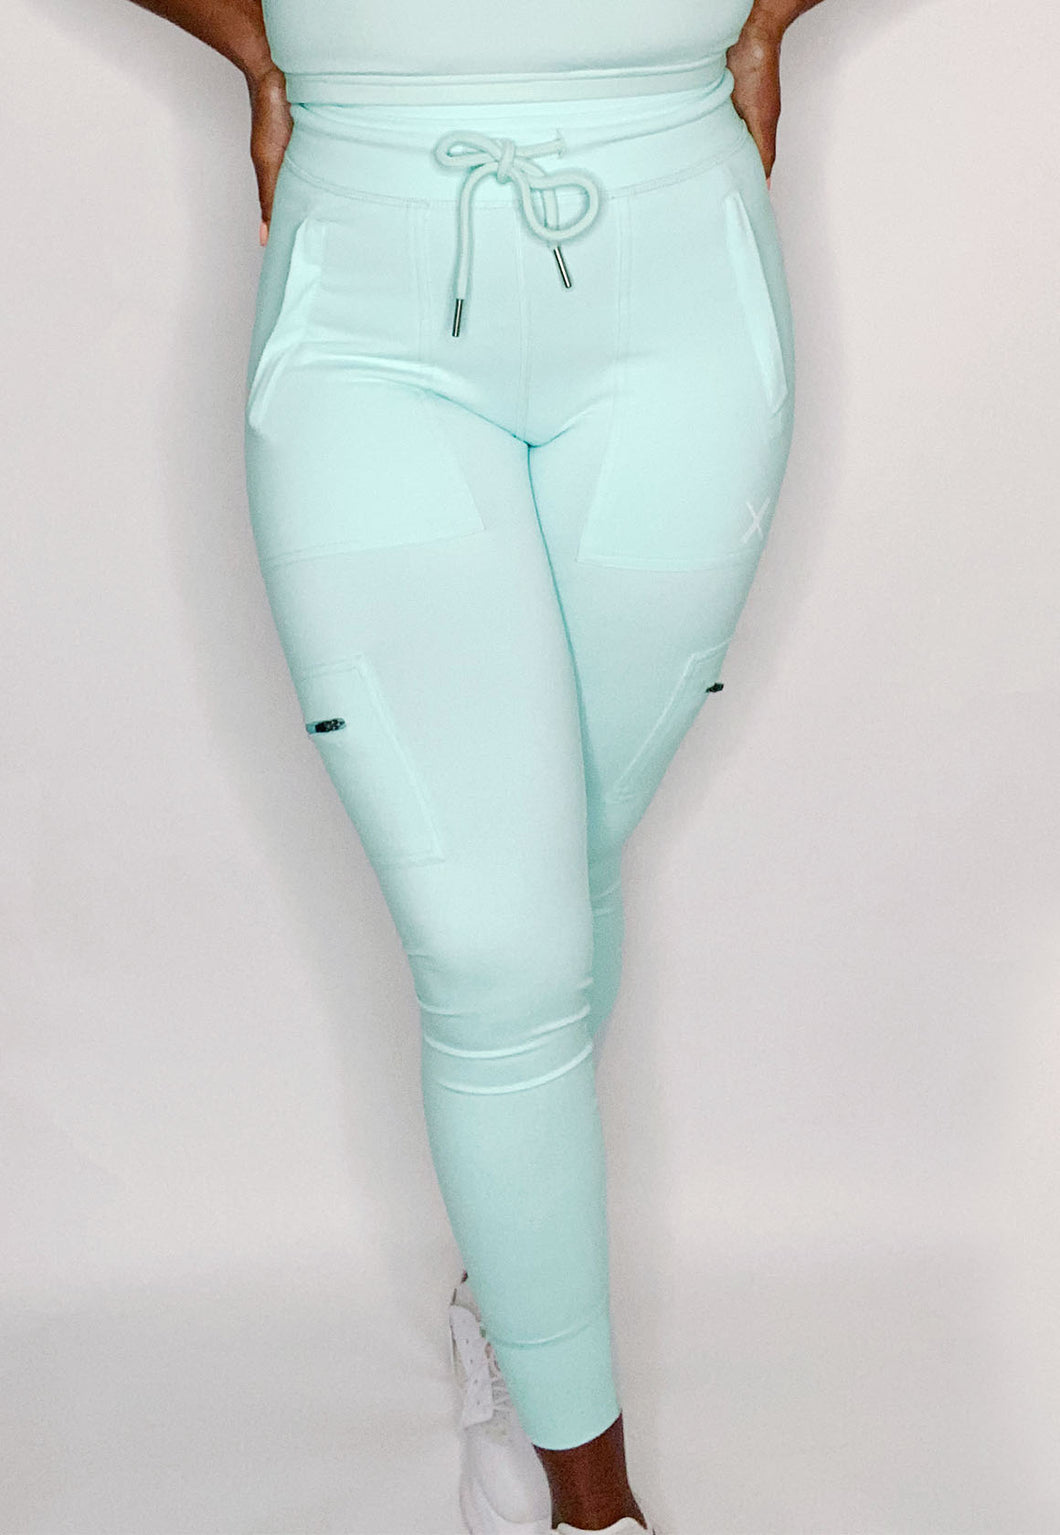 CARGO Leggings - Mint